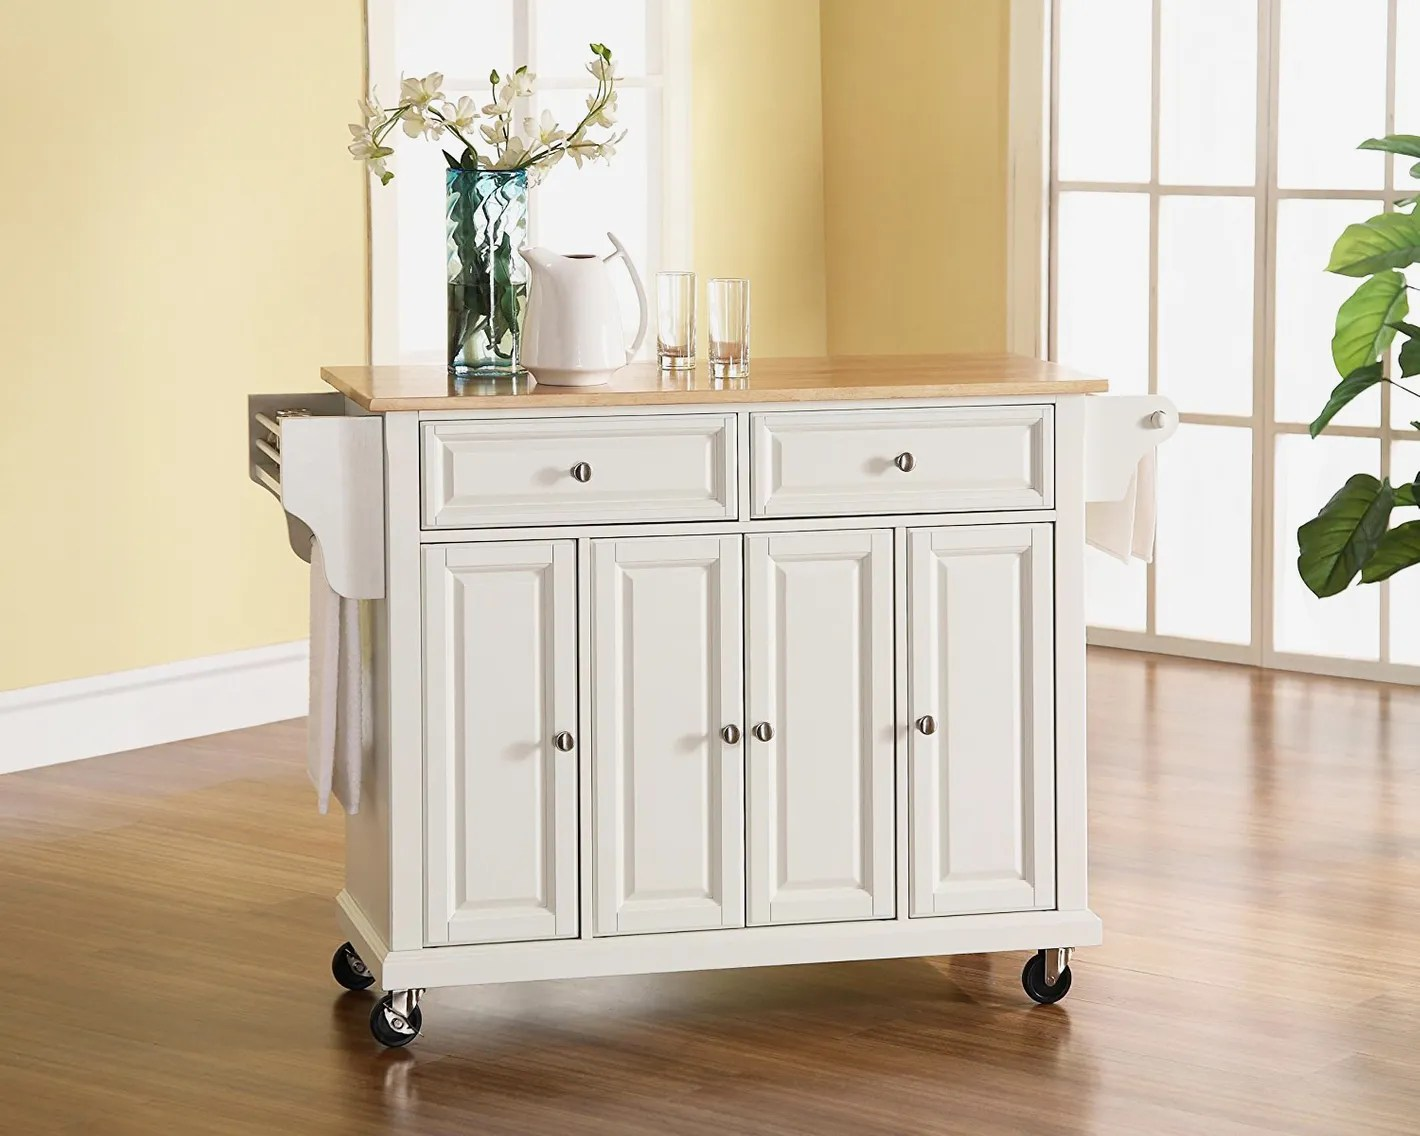 best kitchen islands cabinet lighting ideas the 14 butcher block and carts 2018 crosley furniture rolling island with natural wood top